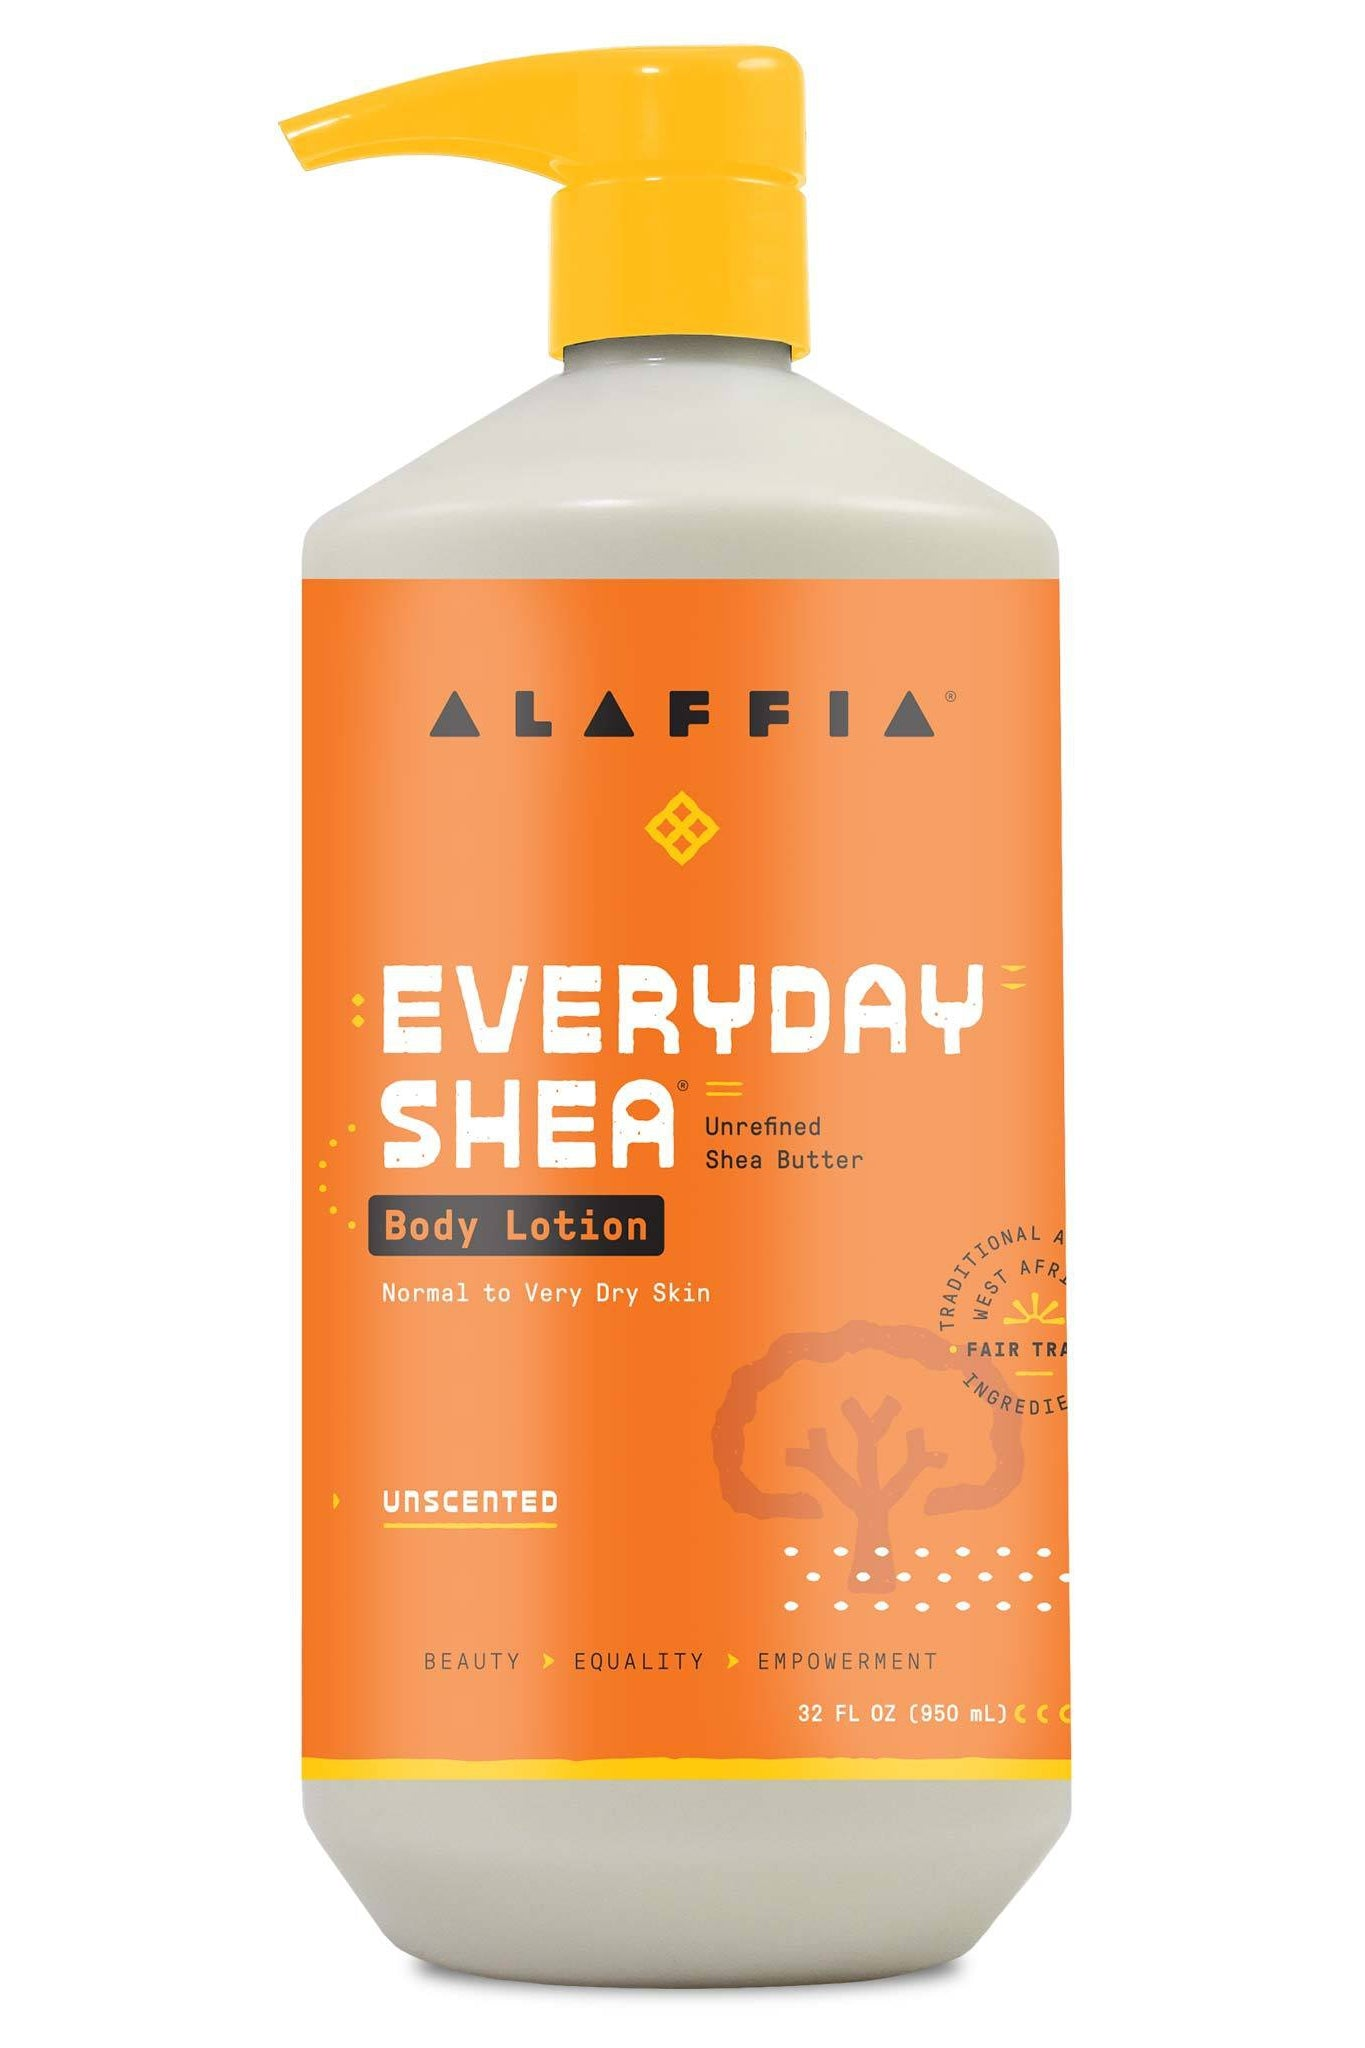 Alaffia Everyday Shea Body Lotion - Unscented 950 ml